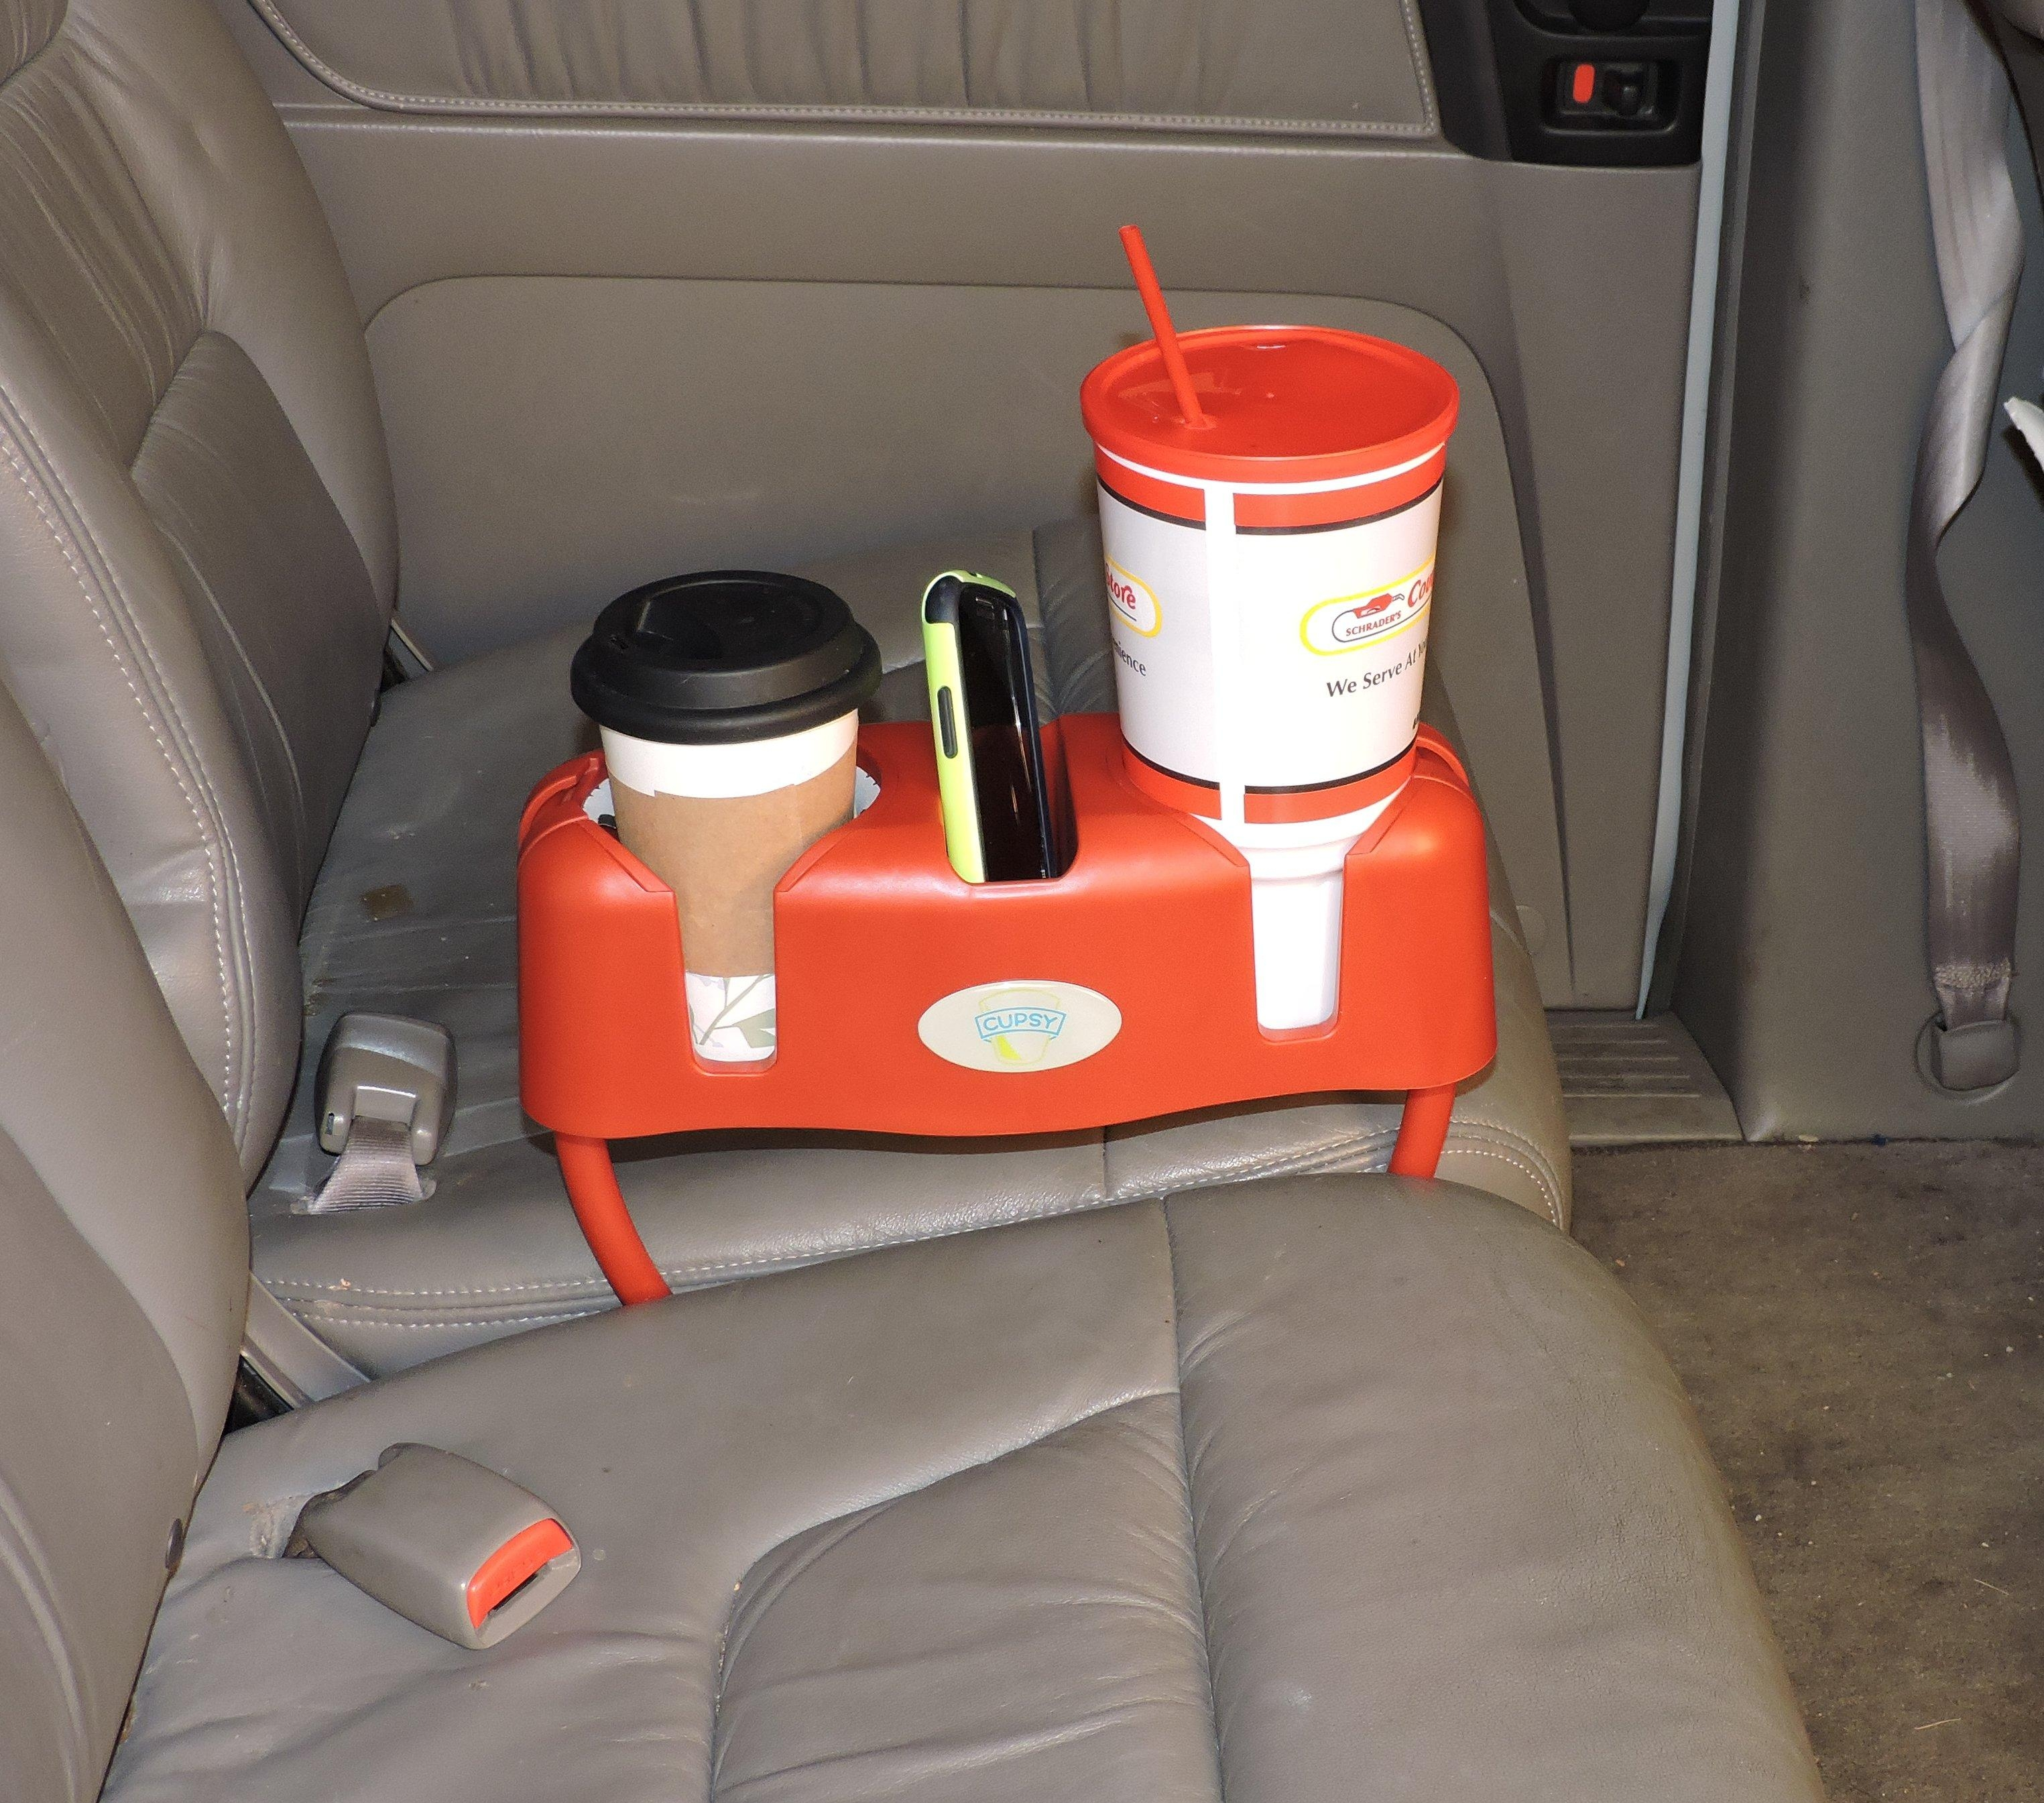 Cupsy – The World's Most Overachieving Cupholder Pertaining To Sofas With Drink Holder (View 12 of 20)